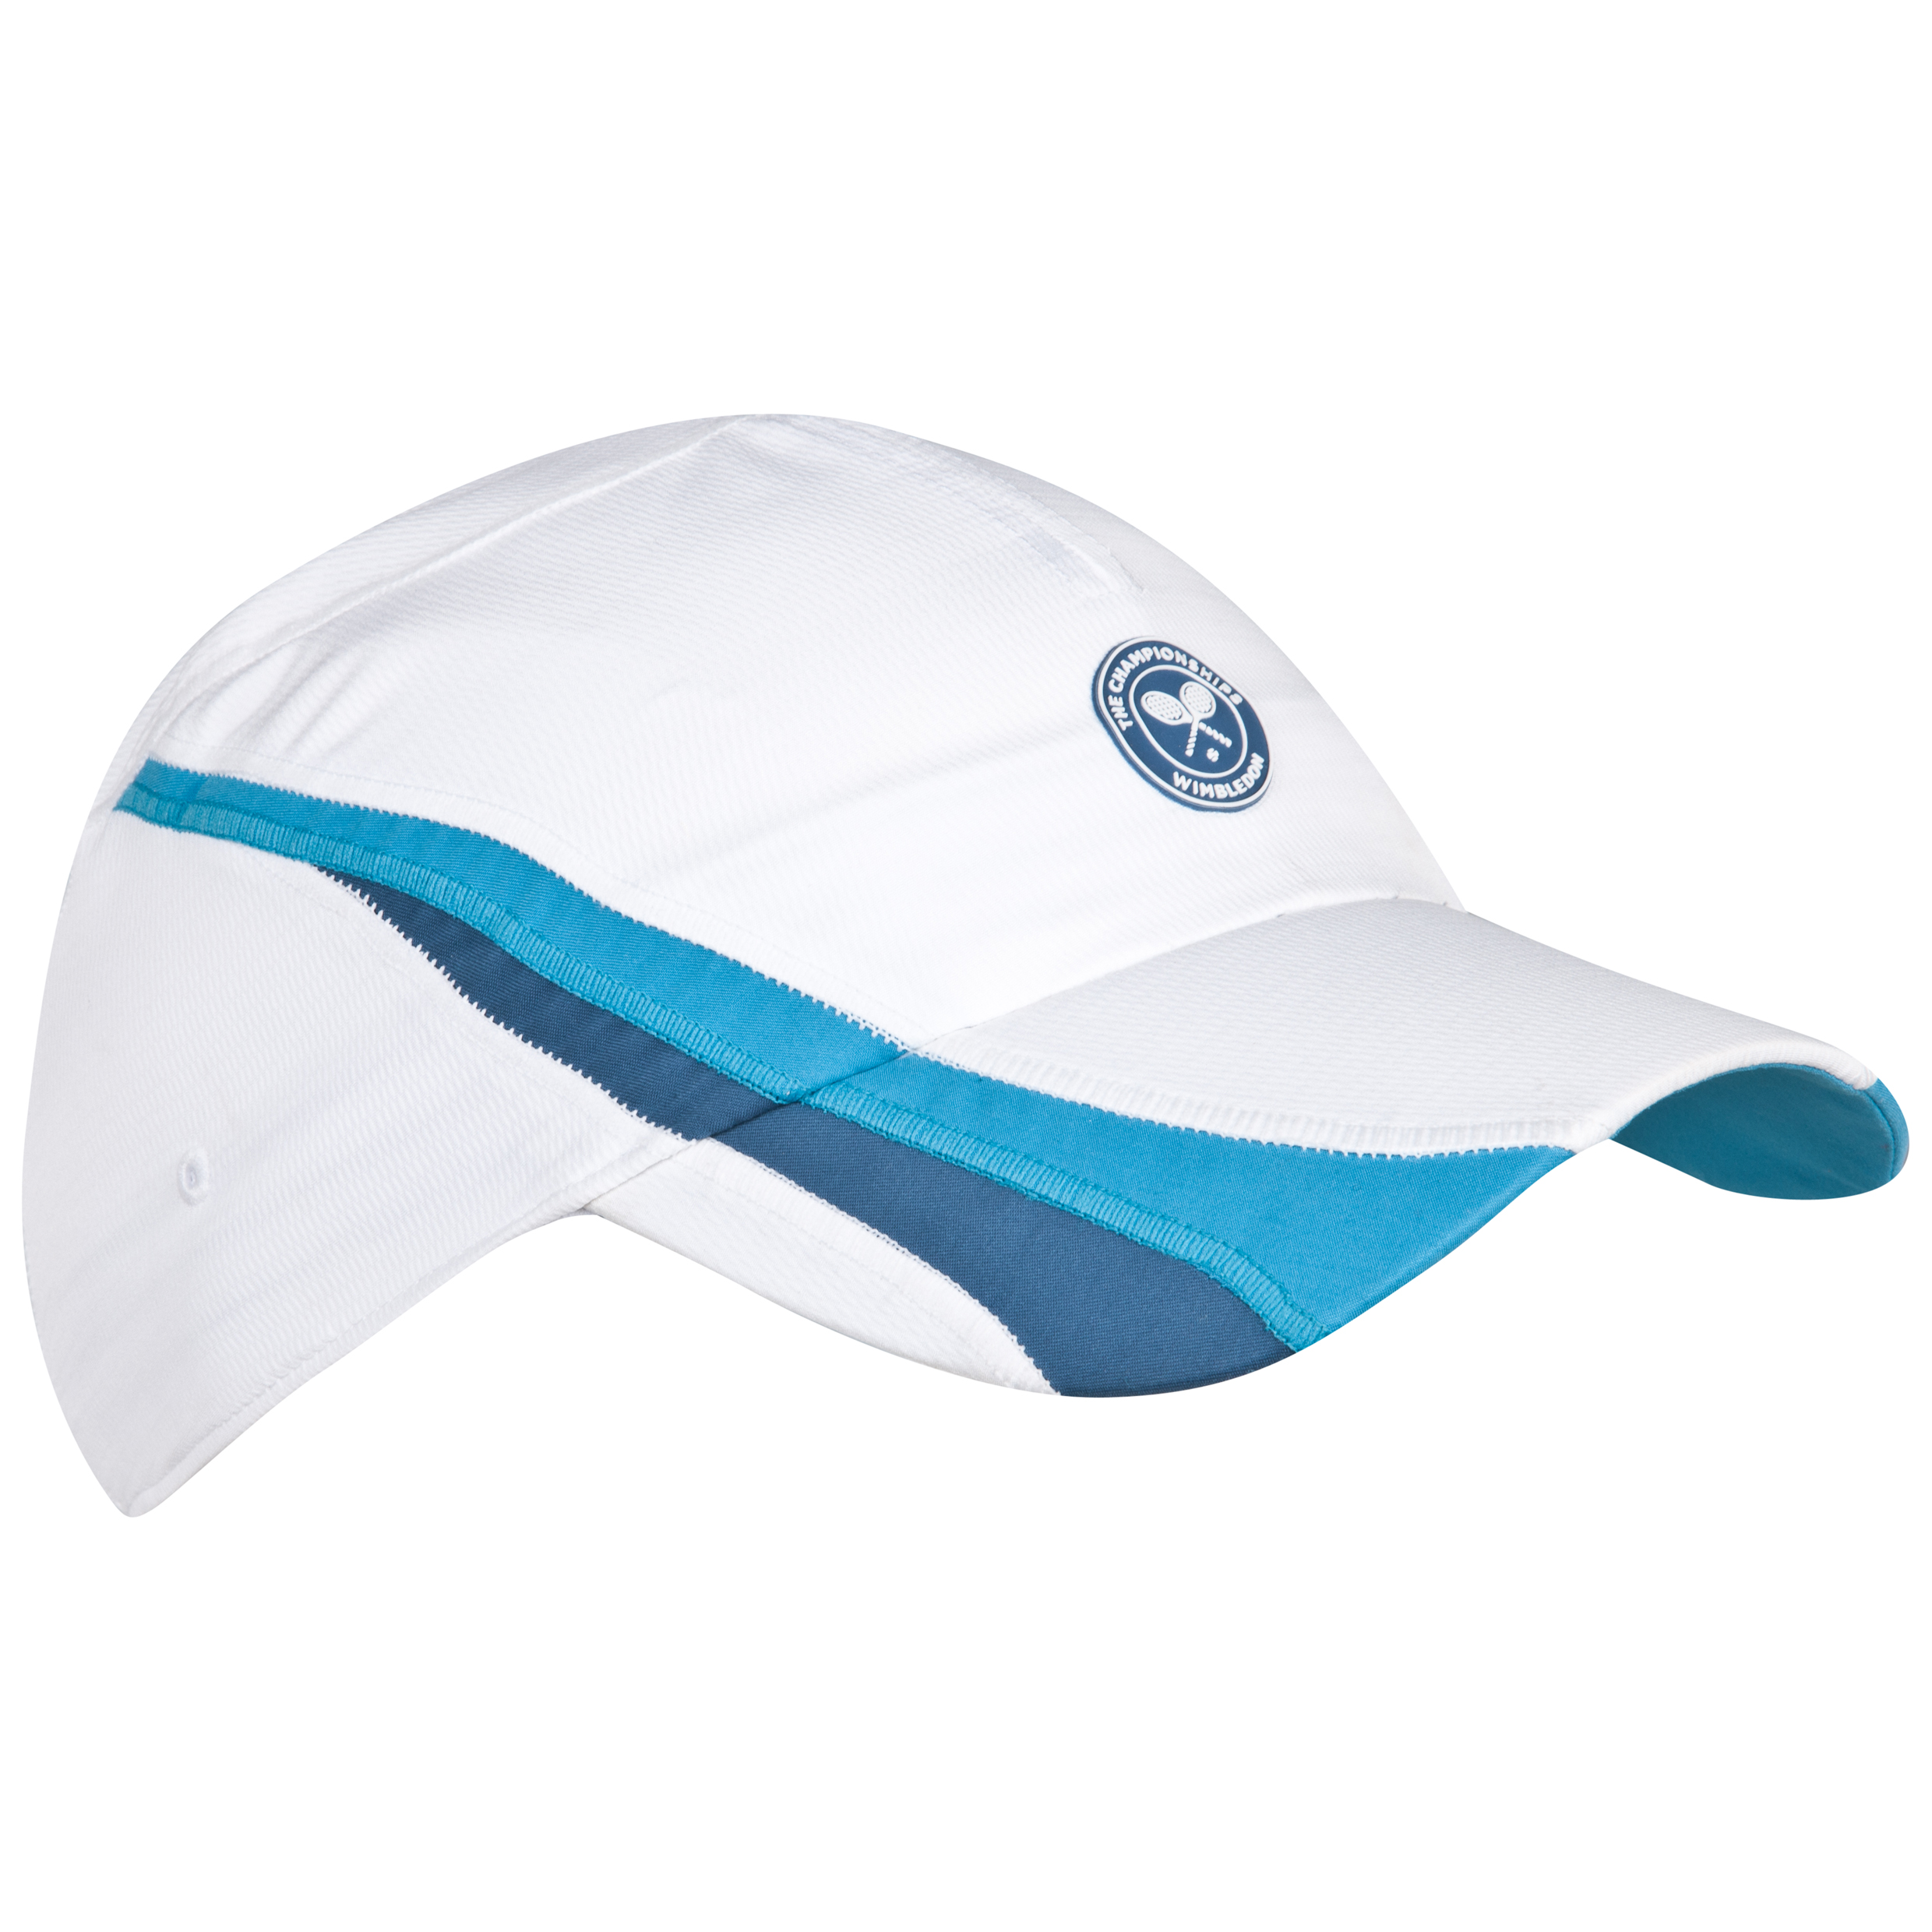 Wimbledon Player Cap - Boys - White